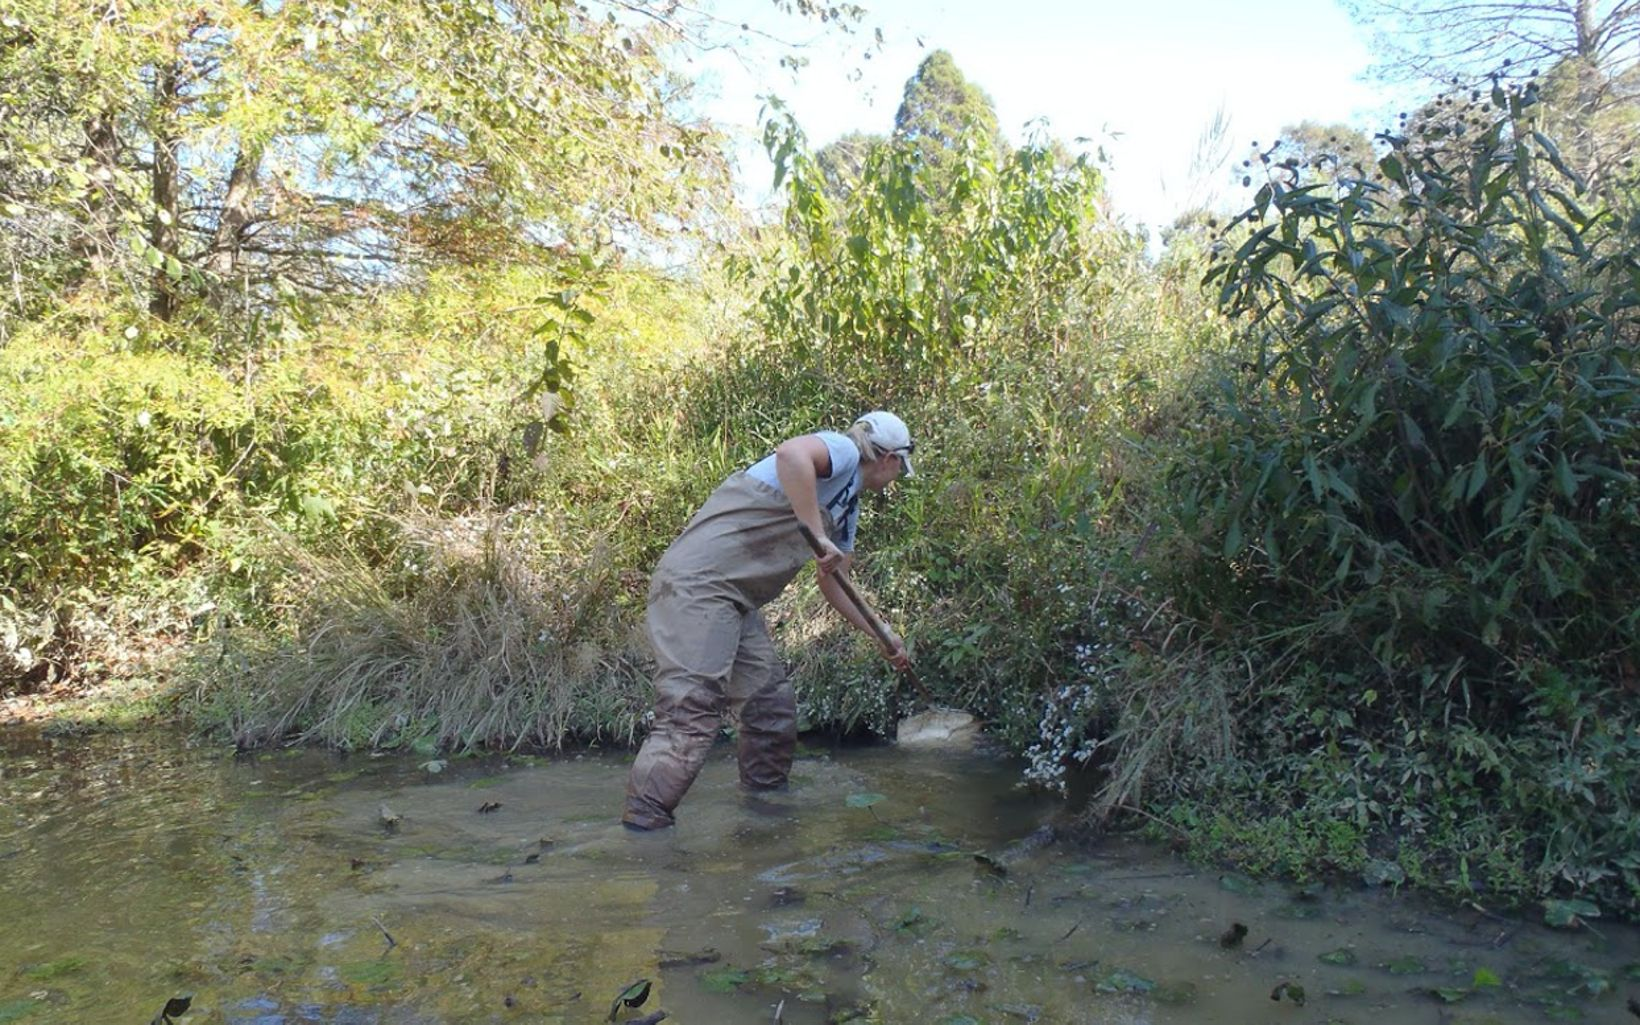 A researcher places a net into a swampy area in a creek.